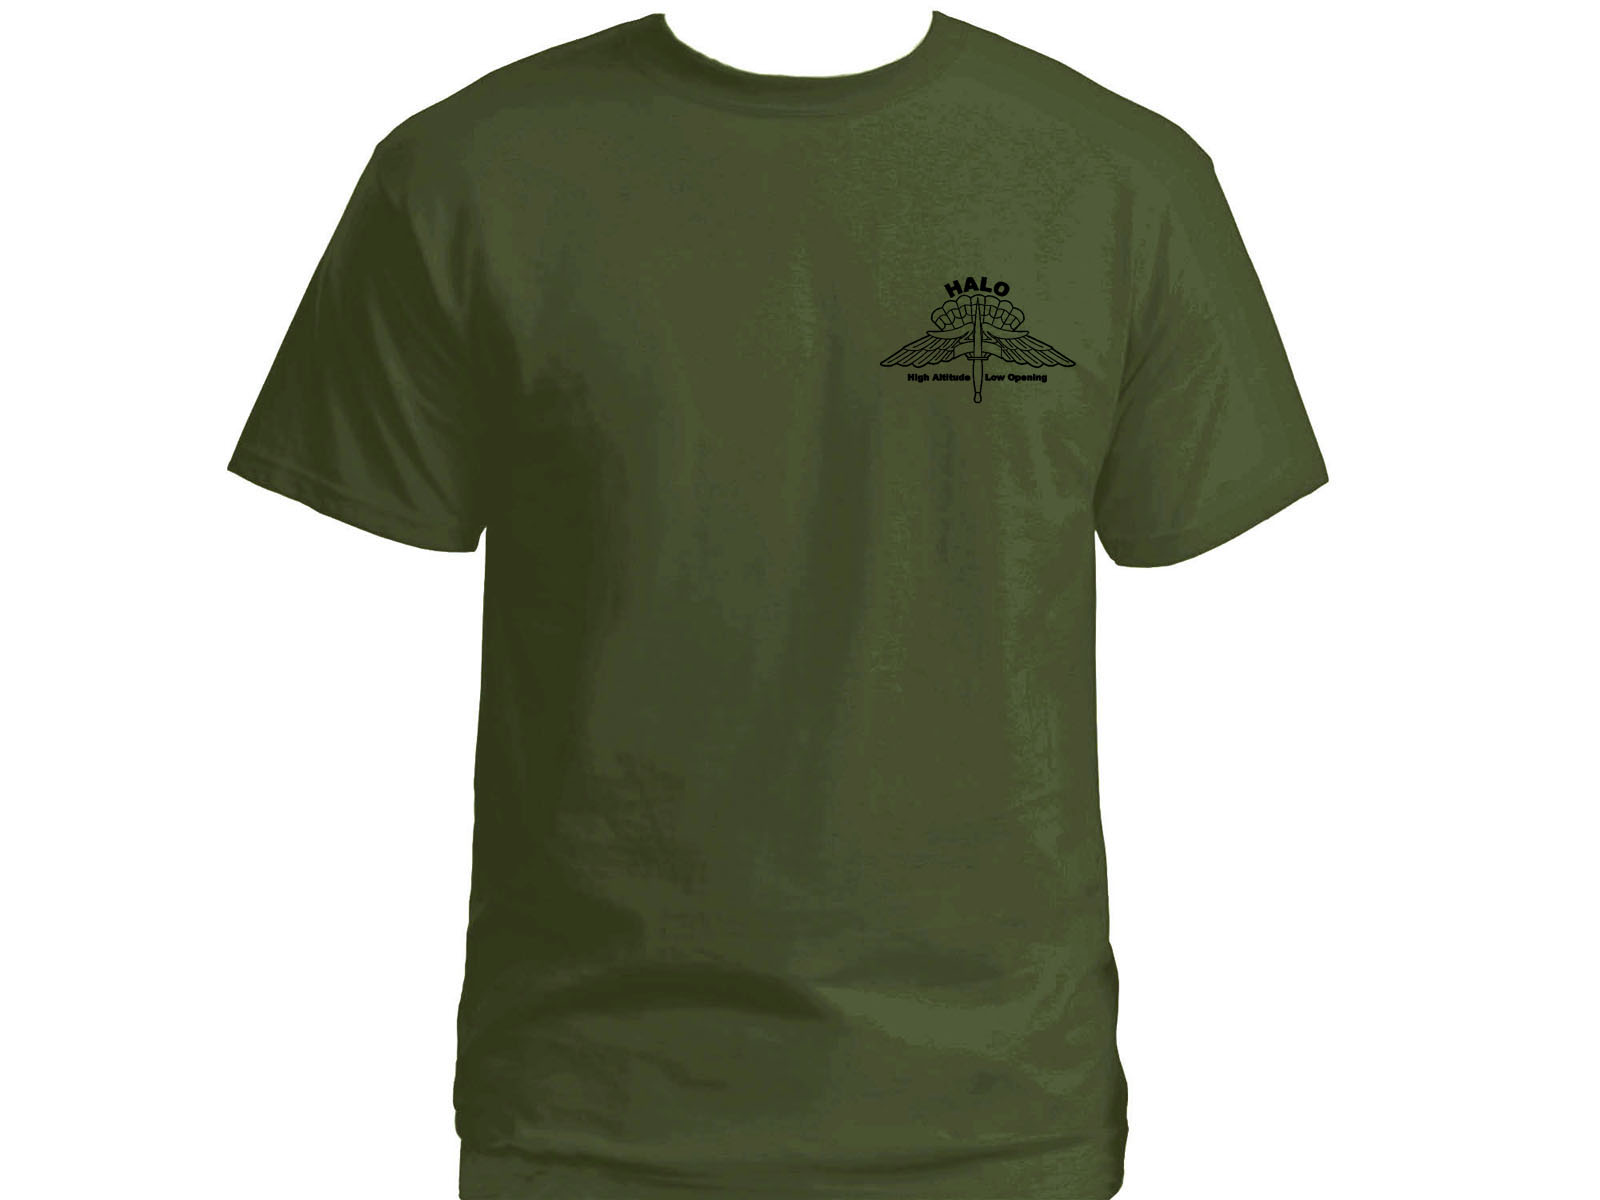 US army t-shirts,tank tops - My Cool T-Shirt - HALO military free ...